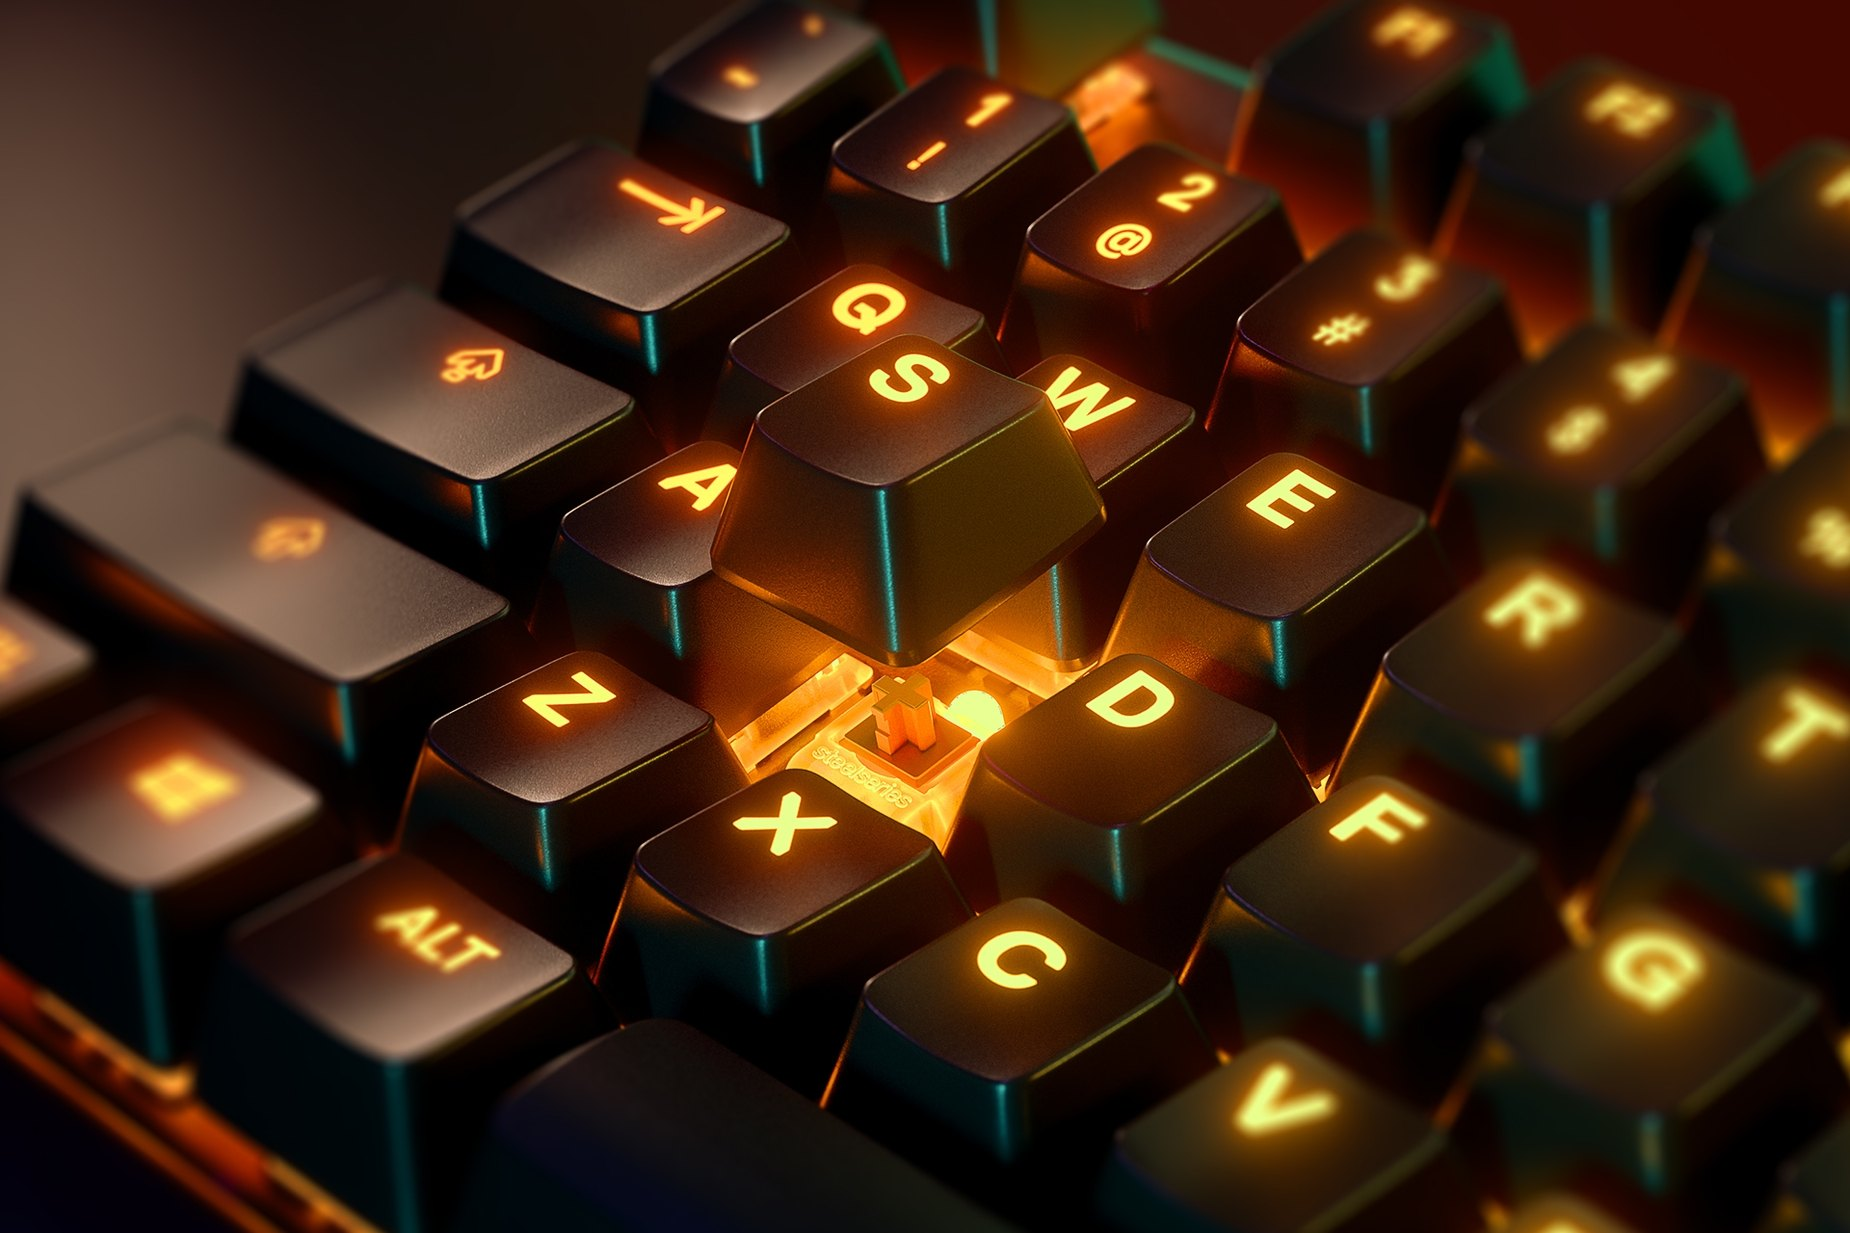 Zoomed in view of a single key on the UK English - Apex 7 (Brown Switch) gaming keyboard, the key is raised up to show the SteelSeries QX2 Mechanical RGB Switch underneath